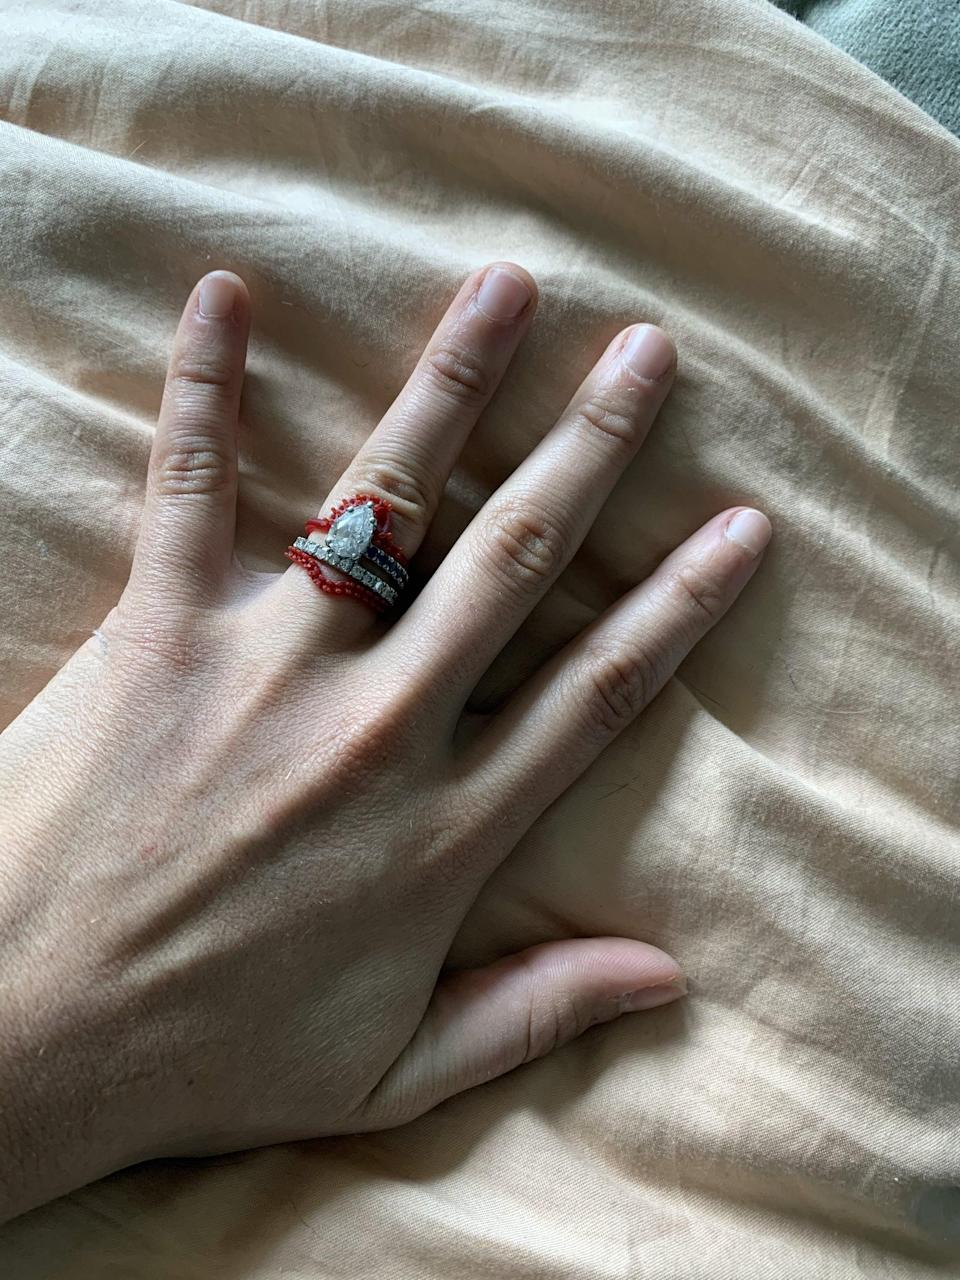 <p>Jillian sent me wax models of the rings so I could try them on with my engagement ring. That was when I discovered I'd rather have a simple, straight band at the bottom instead of something curved. All the other details would stay the same.</p>